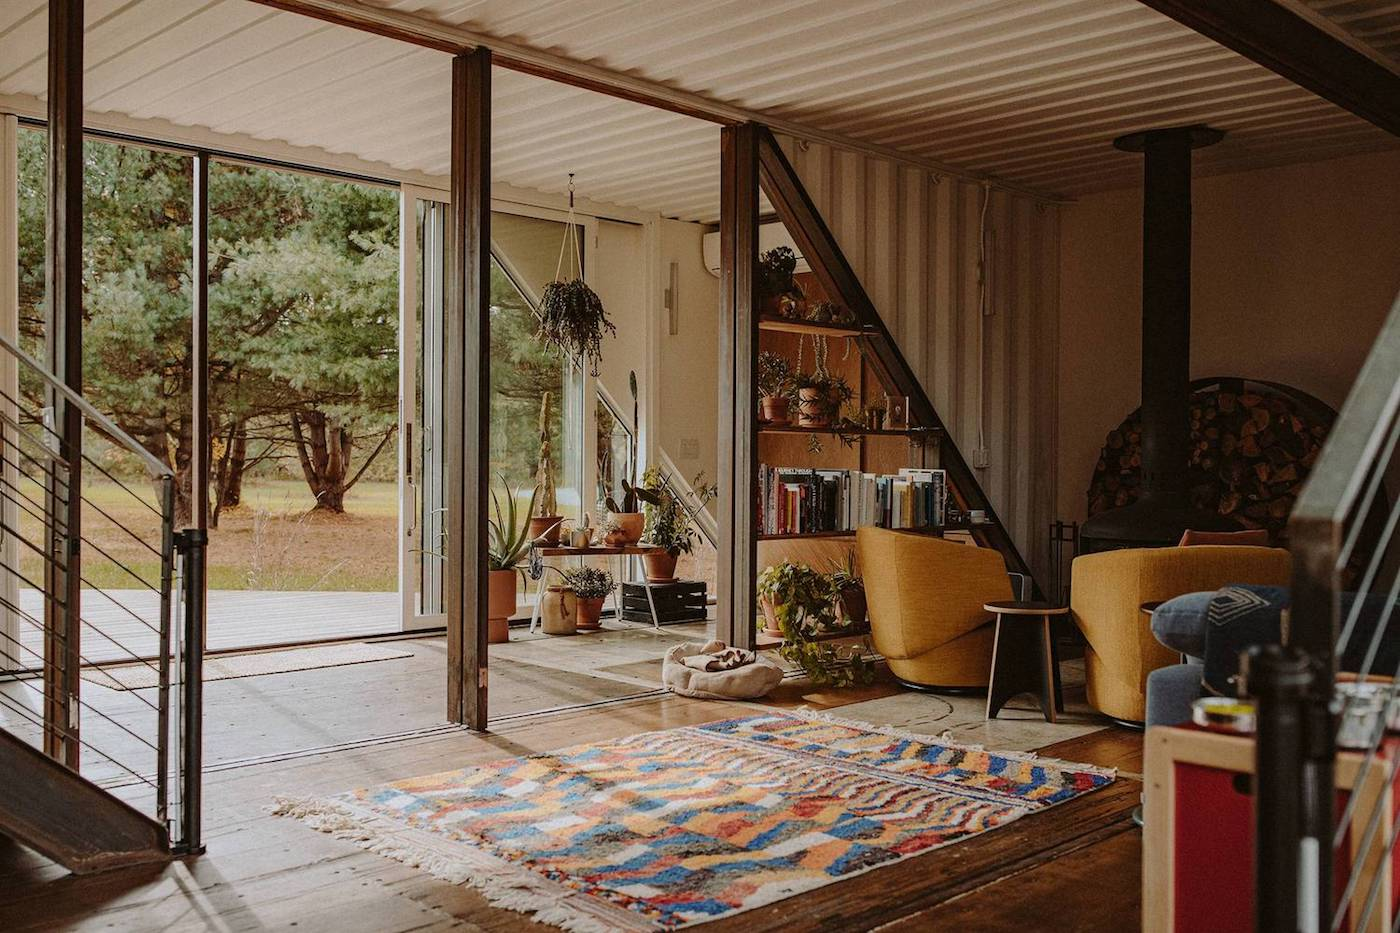 View towards wood fireplace in upcycled shipping container house